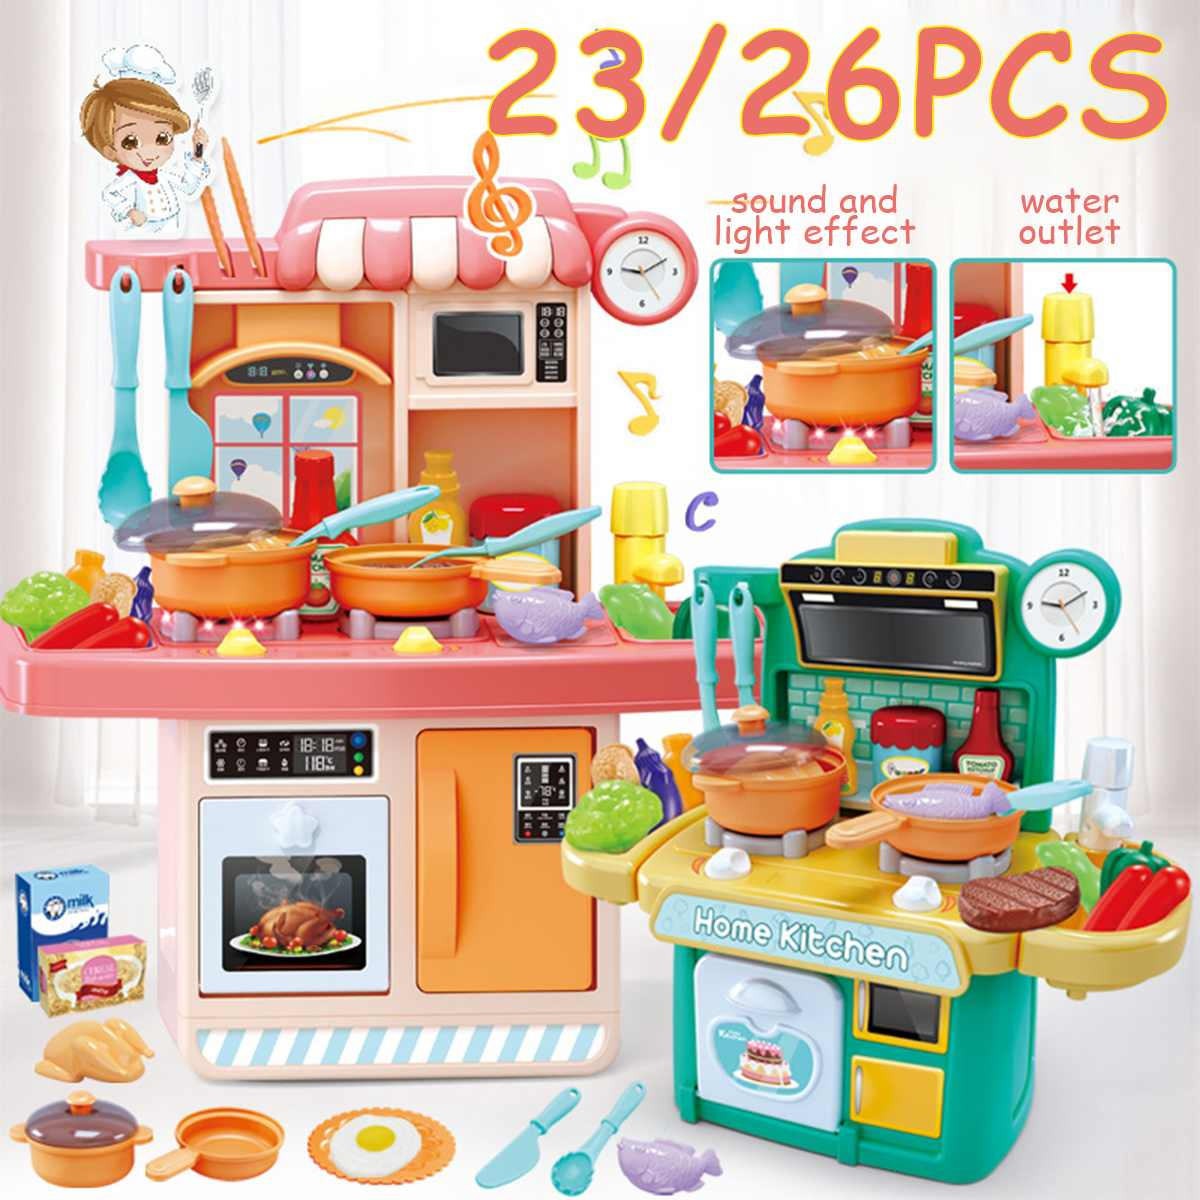 23/26Pcs Kid Kitchen Toys Simulation Kitchen Toy Spray Water Dinnerware Pretend Play Kitchen Cooking Table Set Children's Gift